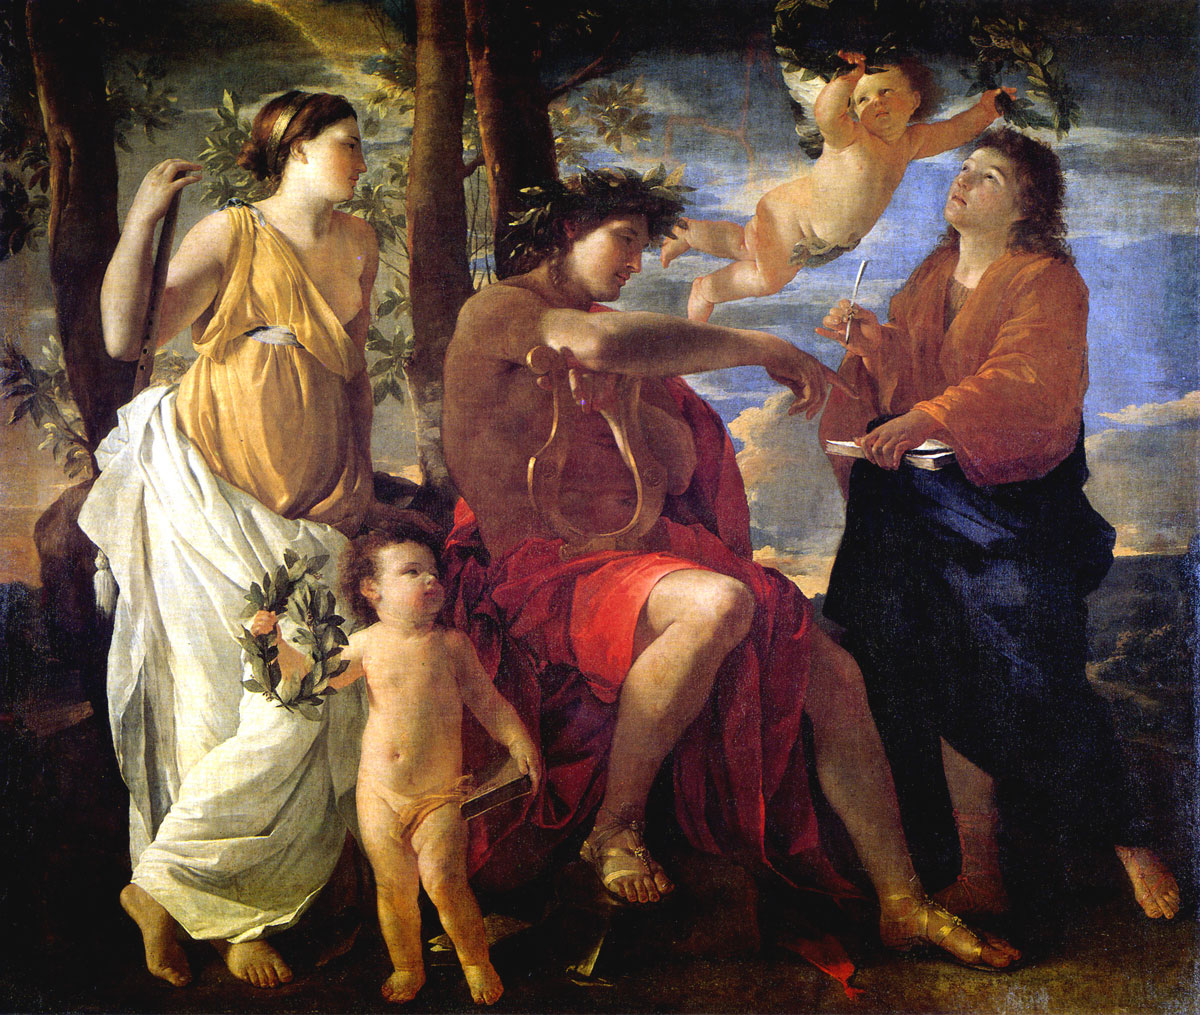 Ispirazione del poeta - Poussin - Inspiration of the poet